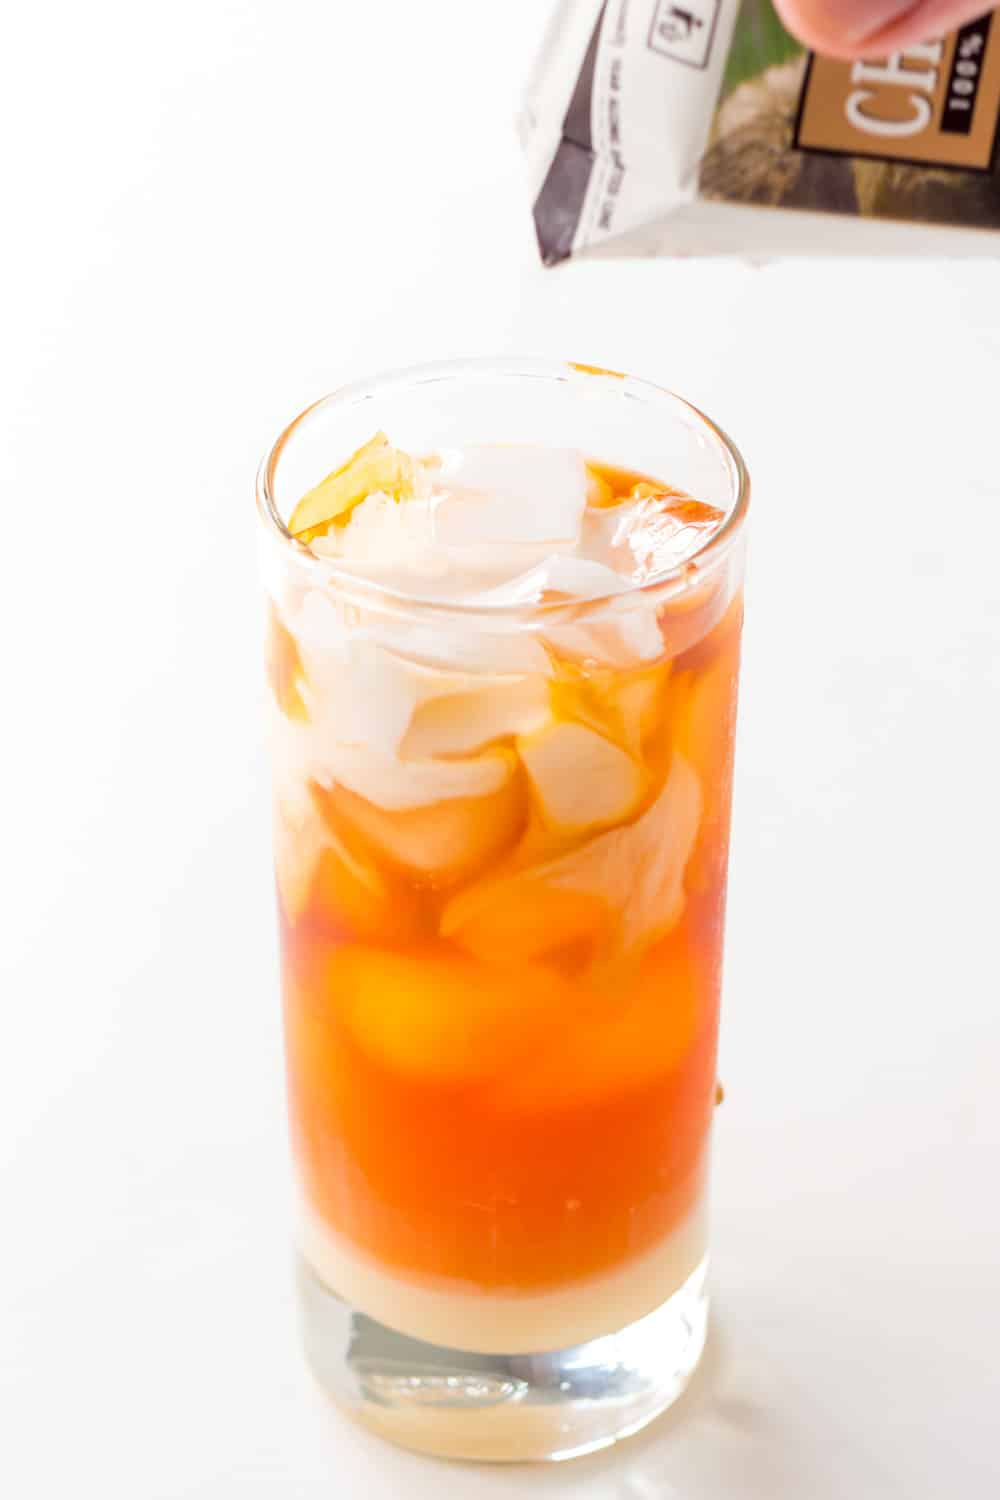 This refreshing Thai Iced Tea with Milk is perfect to accompany a spicy Thai food dinner. This homemade recipe uses palm sugar and coconut milk in place of evaporated and sweetened condensed milk to make it dairy free and vegan.